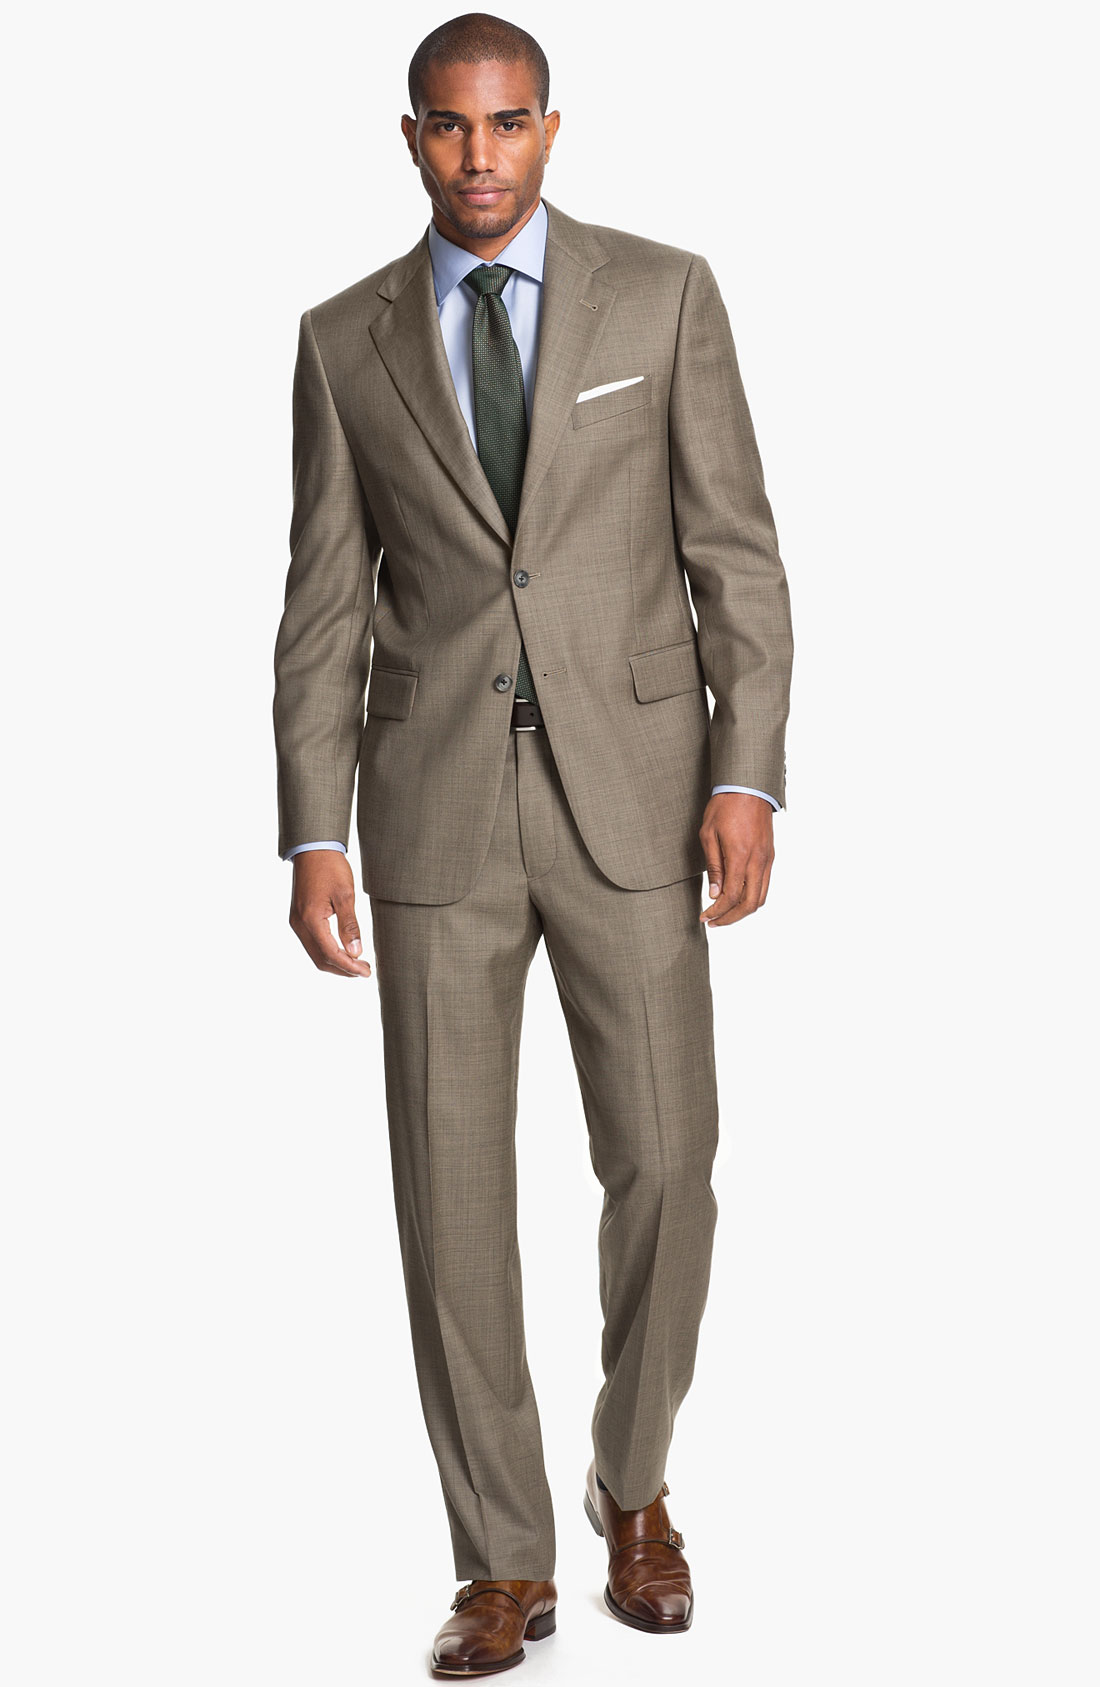 Joseph abboud signature silver wool suit in brown for men for Nordstrom men s dress shirt fit guide